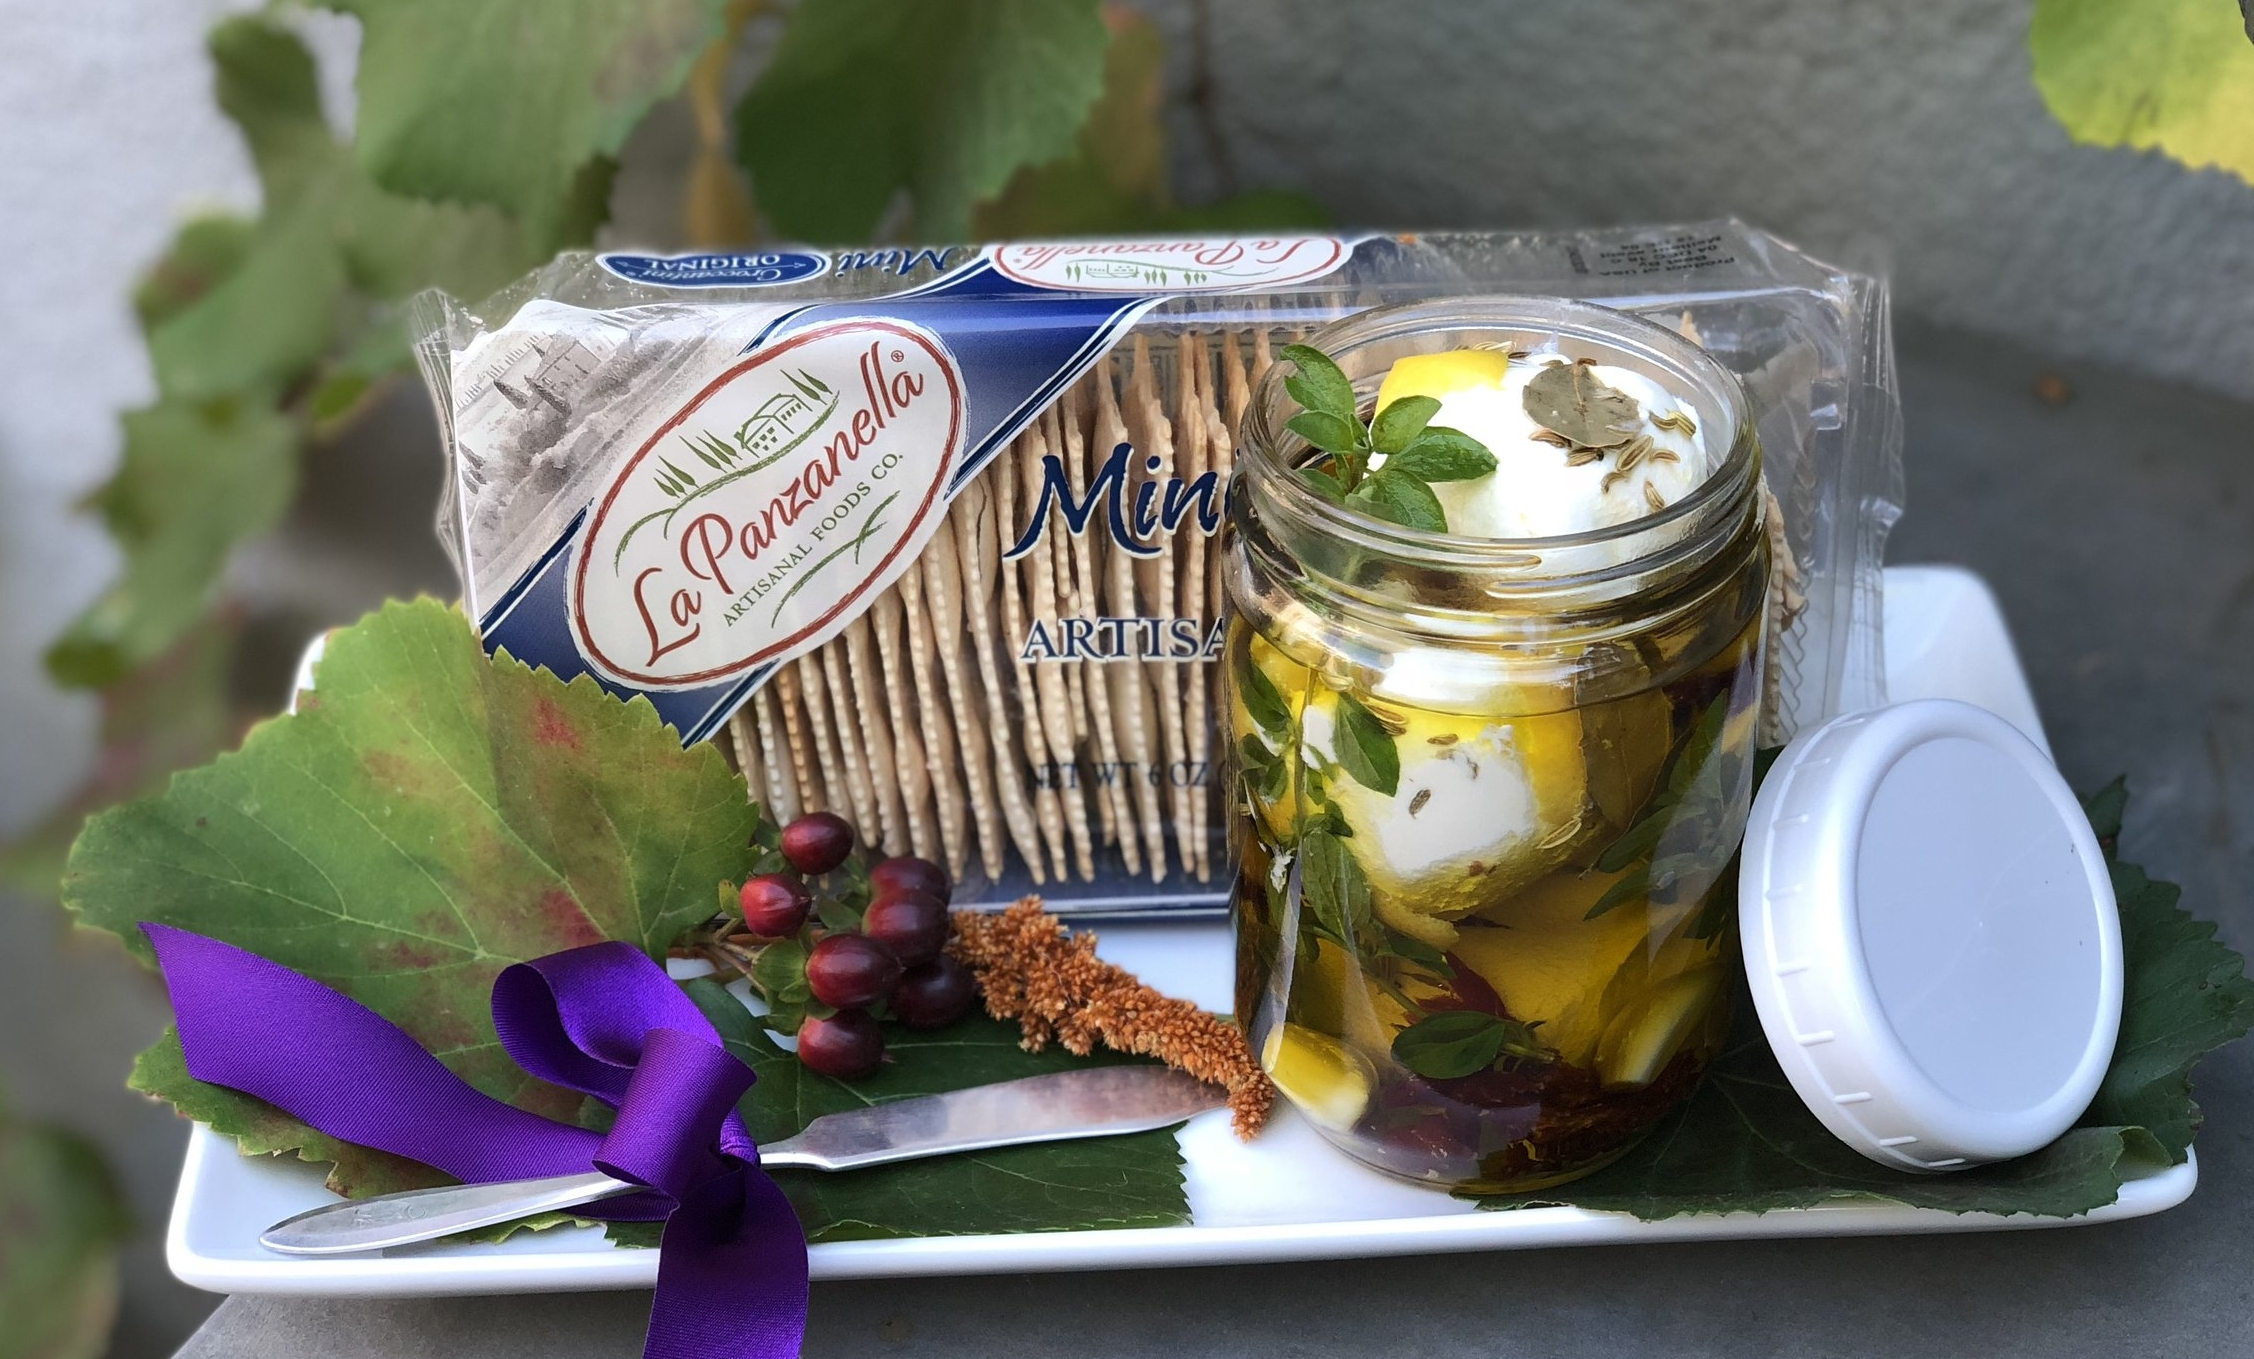 Assemble Marinated Goat Cheese on a simple tray, artisan crackers and a vintage butter knife.